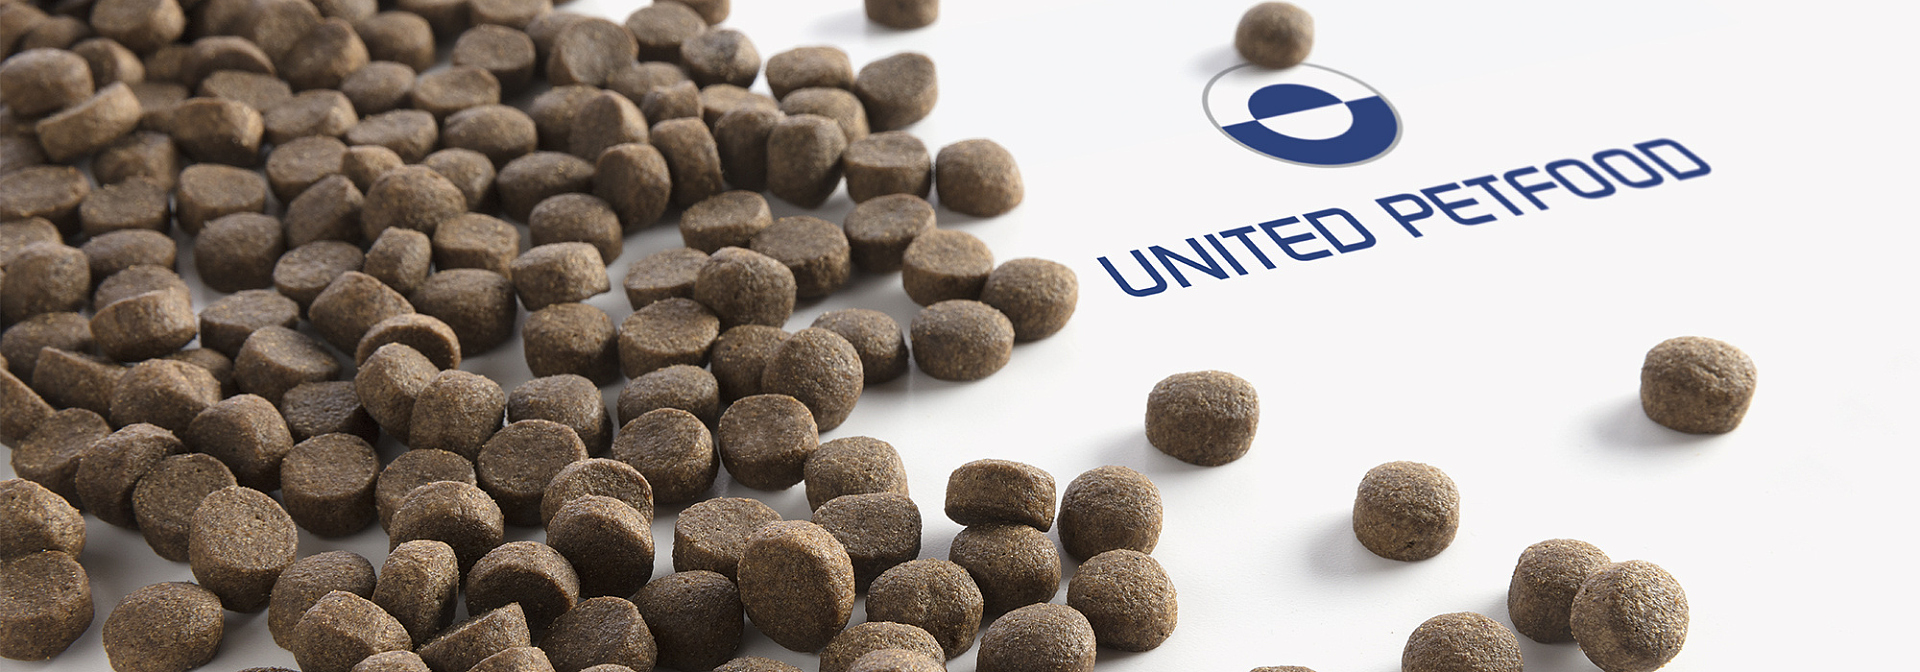 Campagne United Petfood